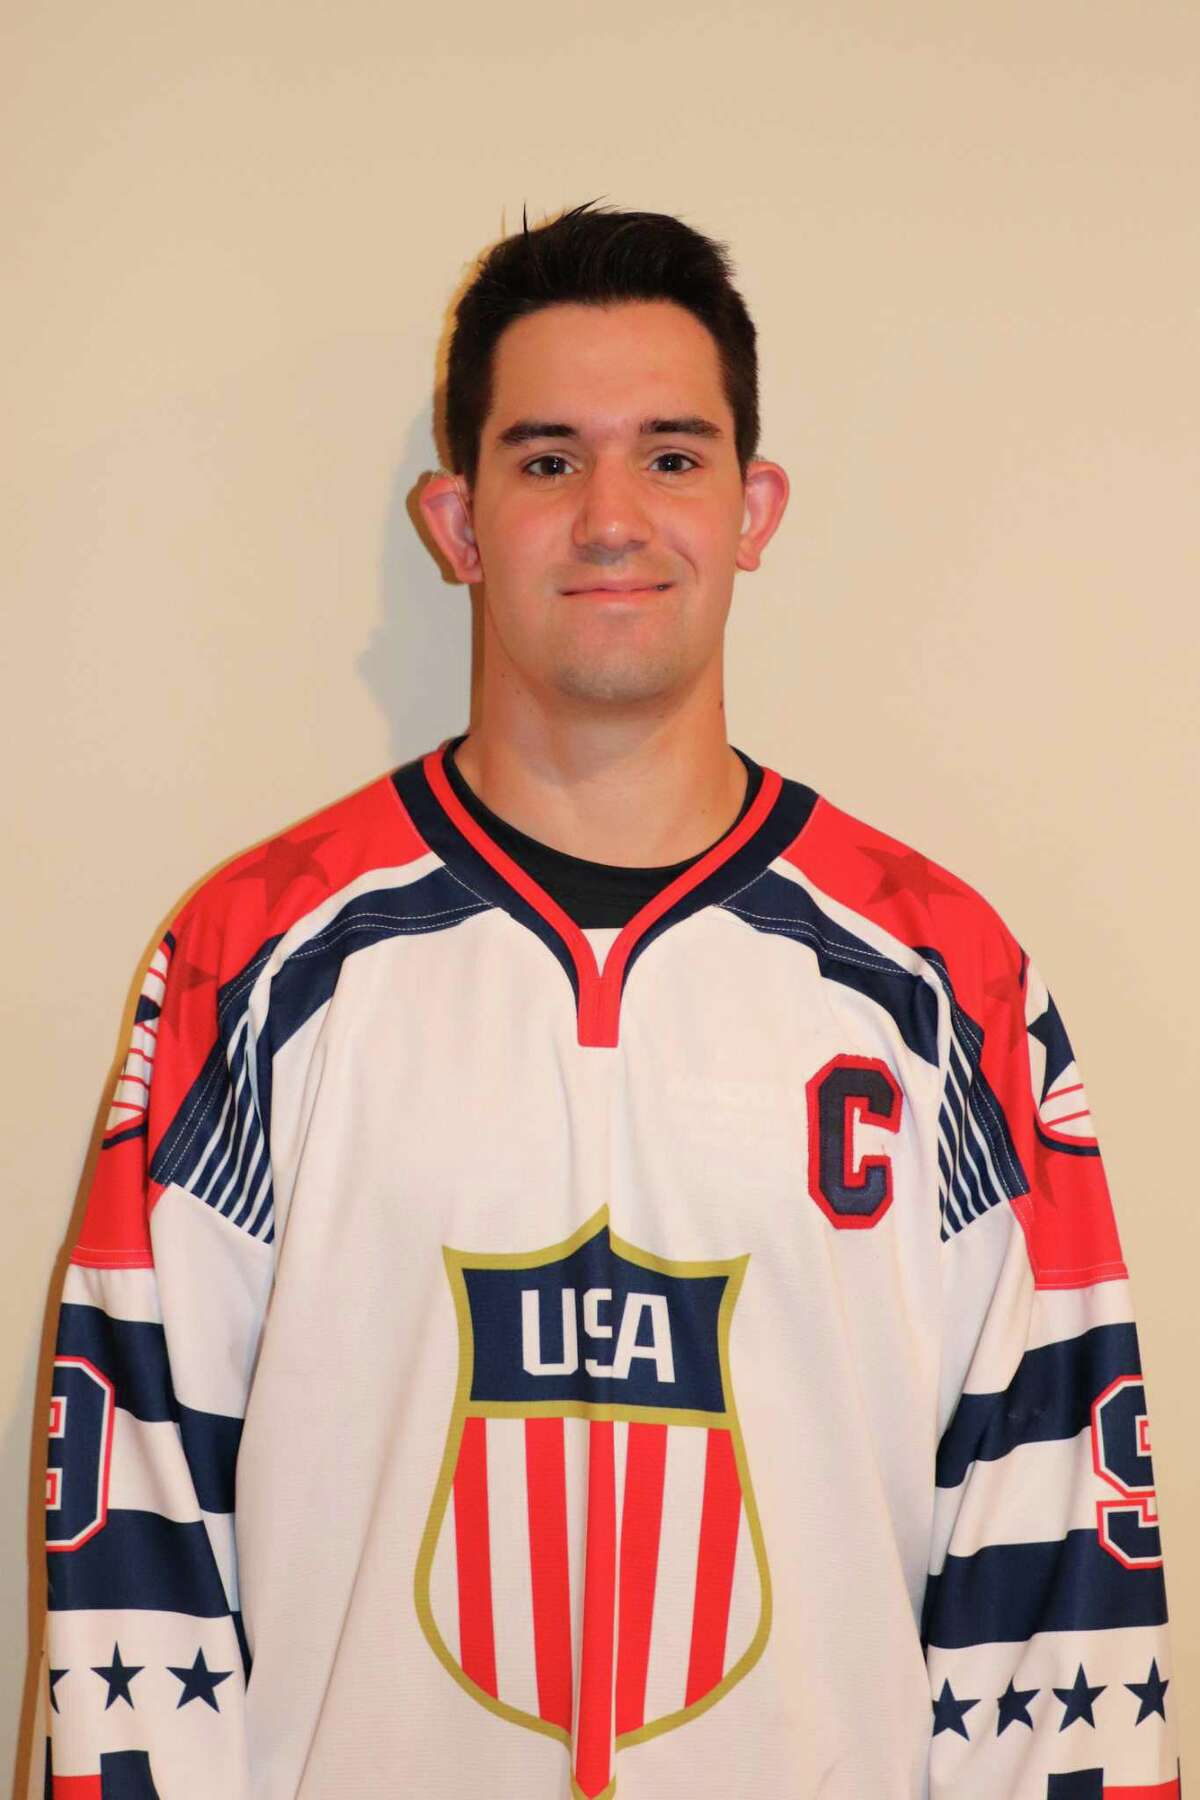 Peter Gintoli of Shelton was recently named captain of the elite deaf hockey players representing the United States in the 19th Winter Deaflympics to be held Dec. 12-21 in Valtellina Valchiavenna, Italy.